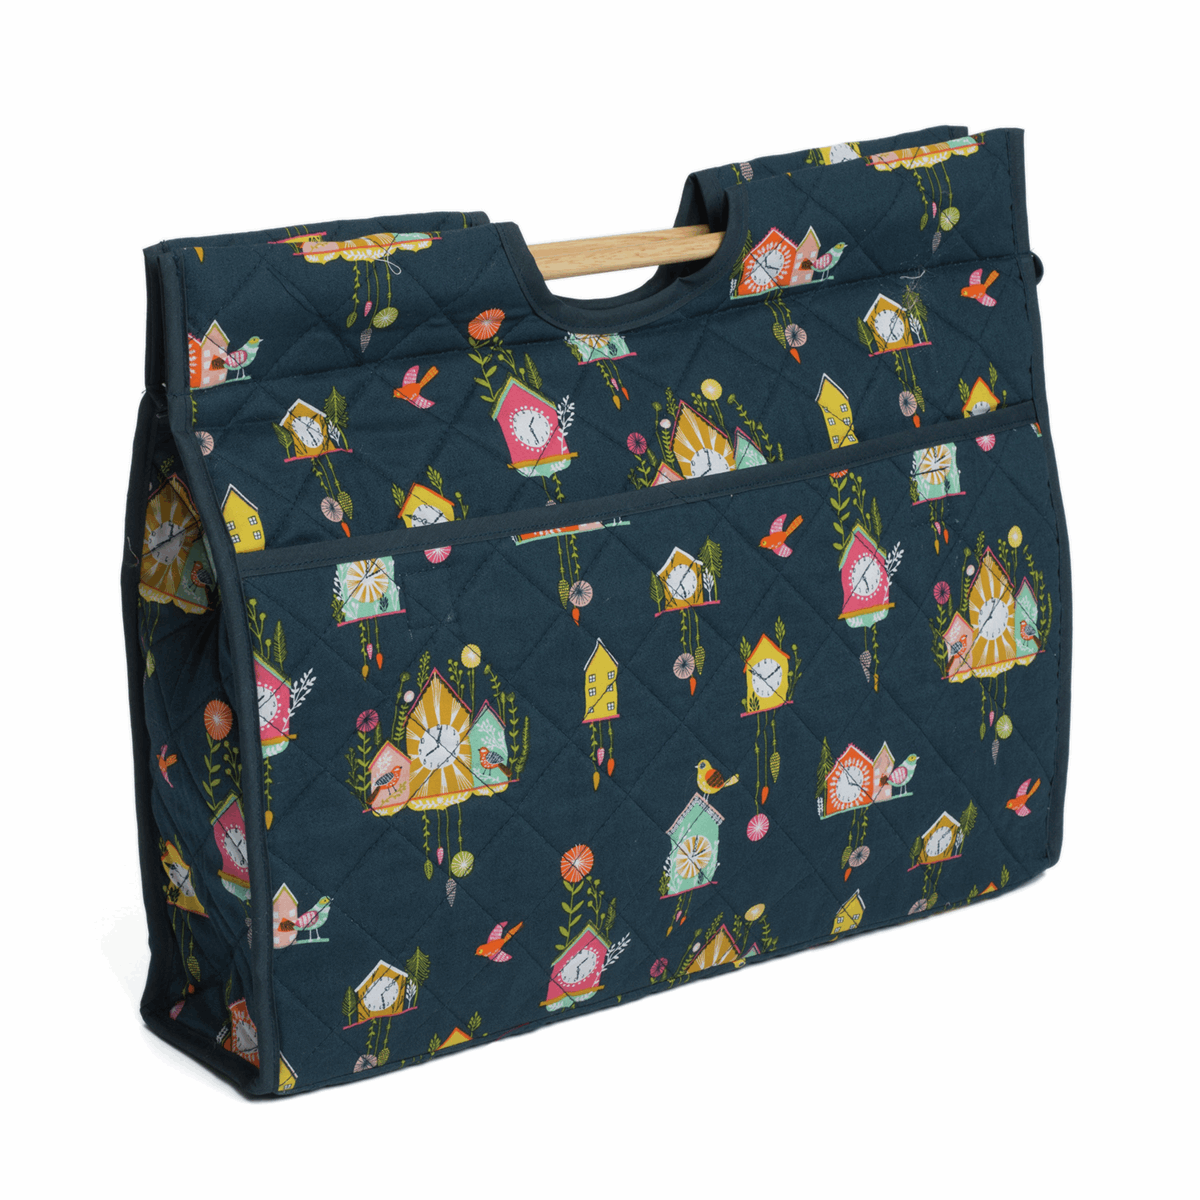 Picture of Craft Bag with Wooden Handles: Cuckoos Calling